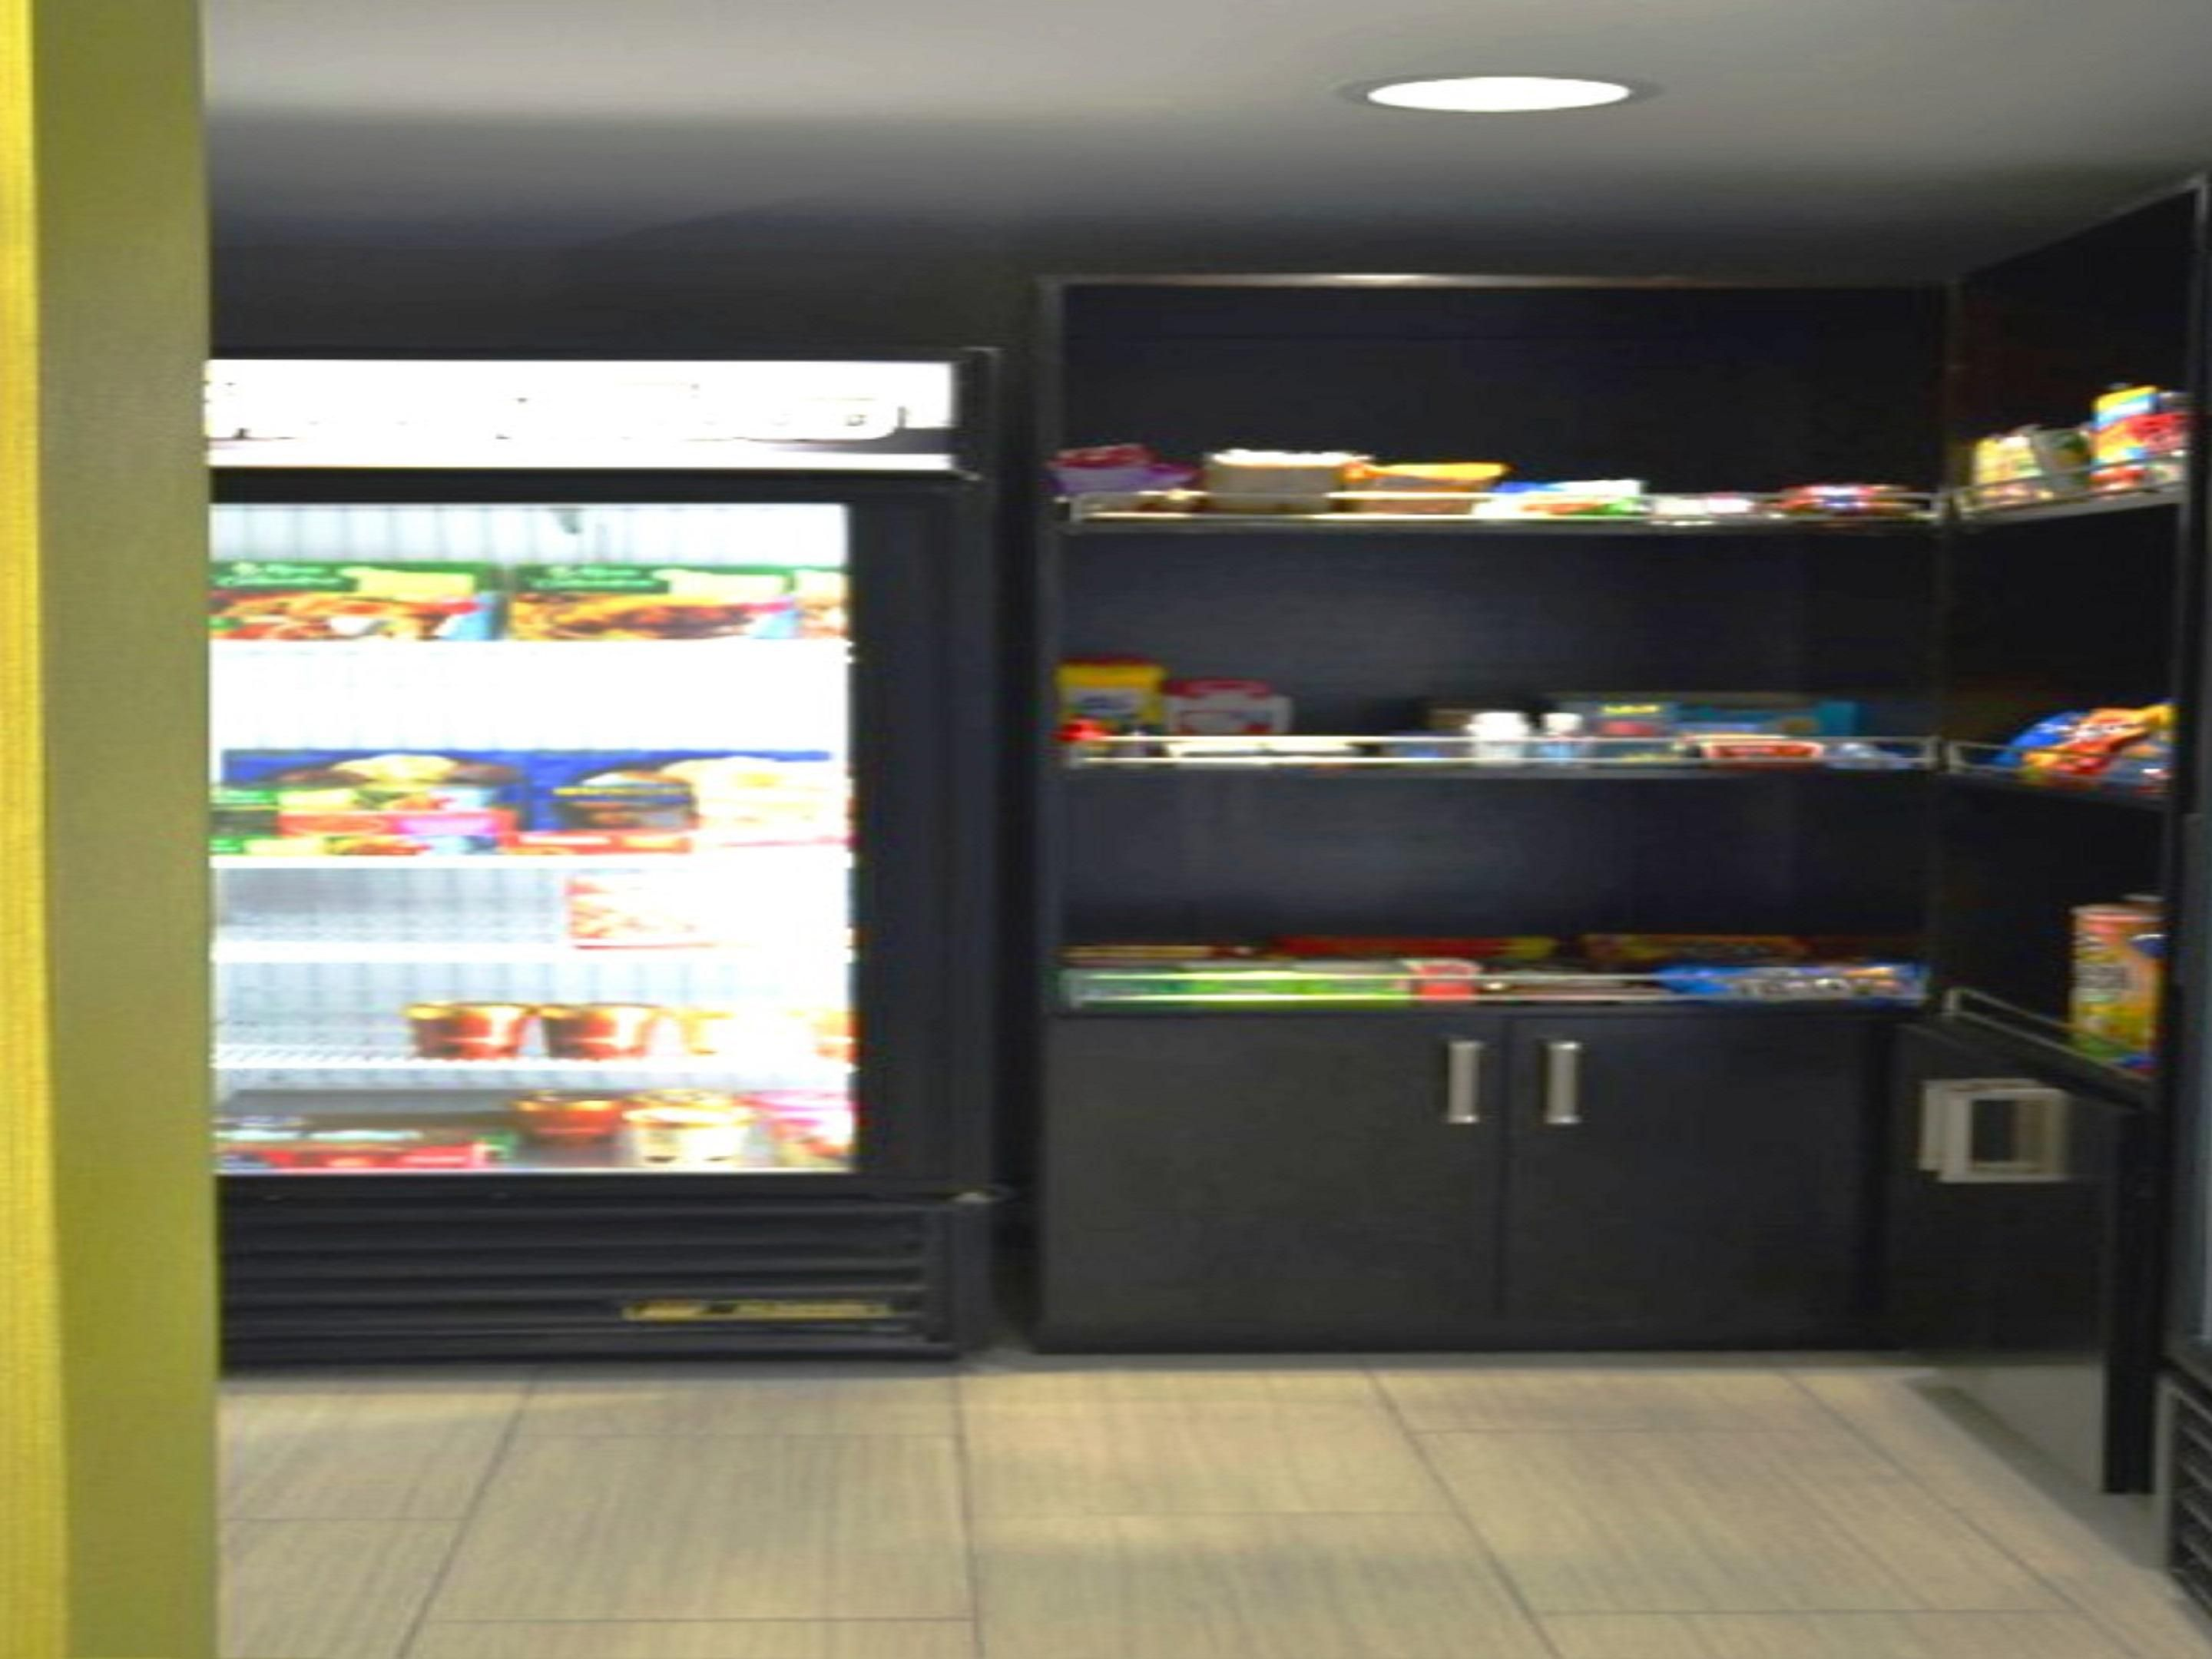 Suite Shop has multiple snack and beverage options